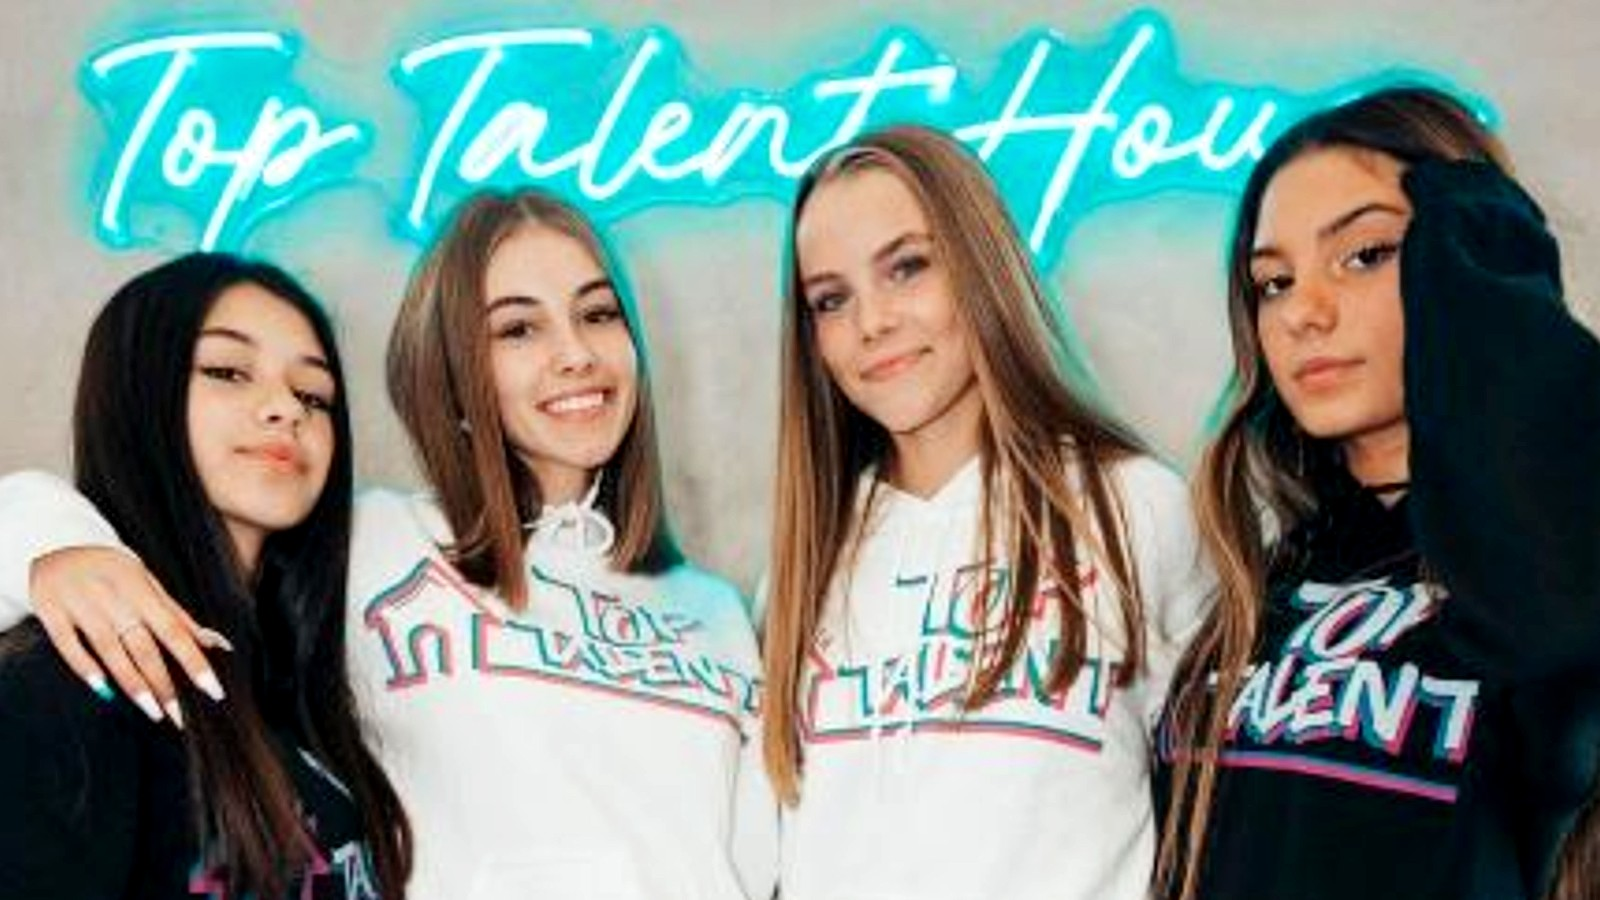 Members of the Top Talent house pose by a sign